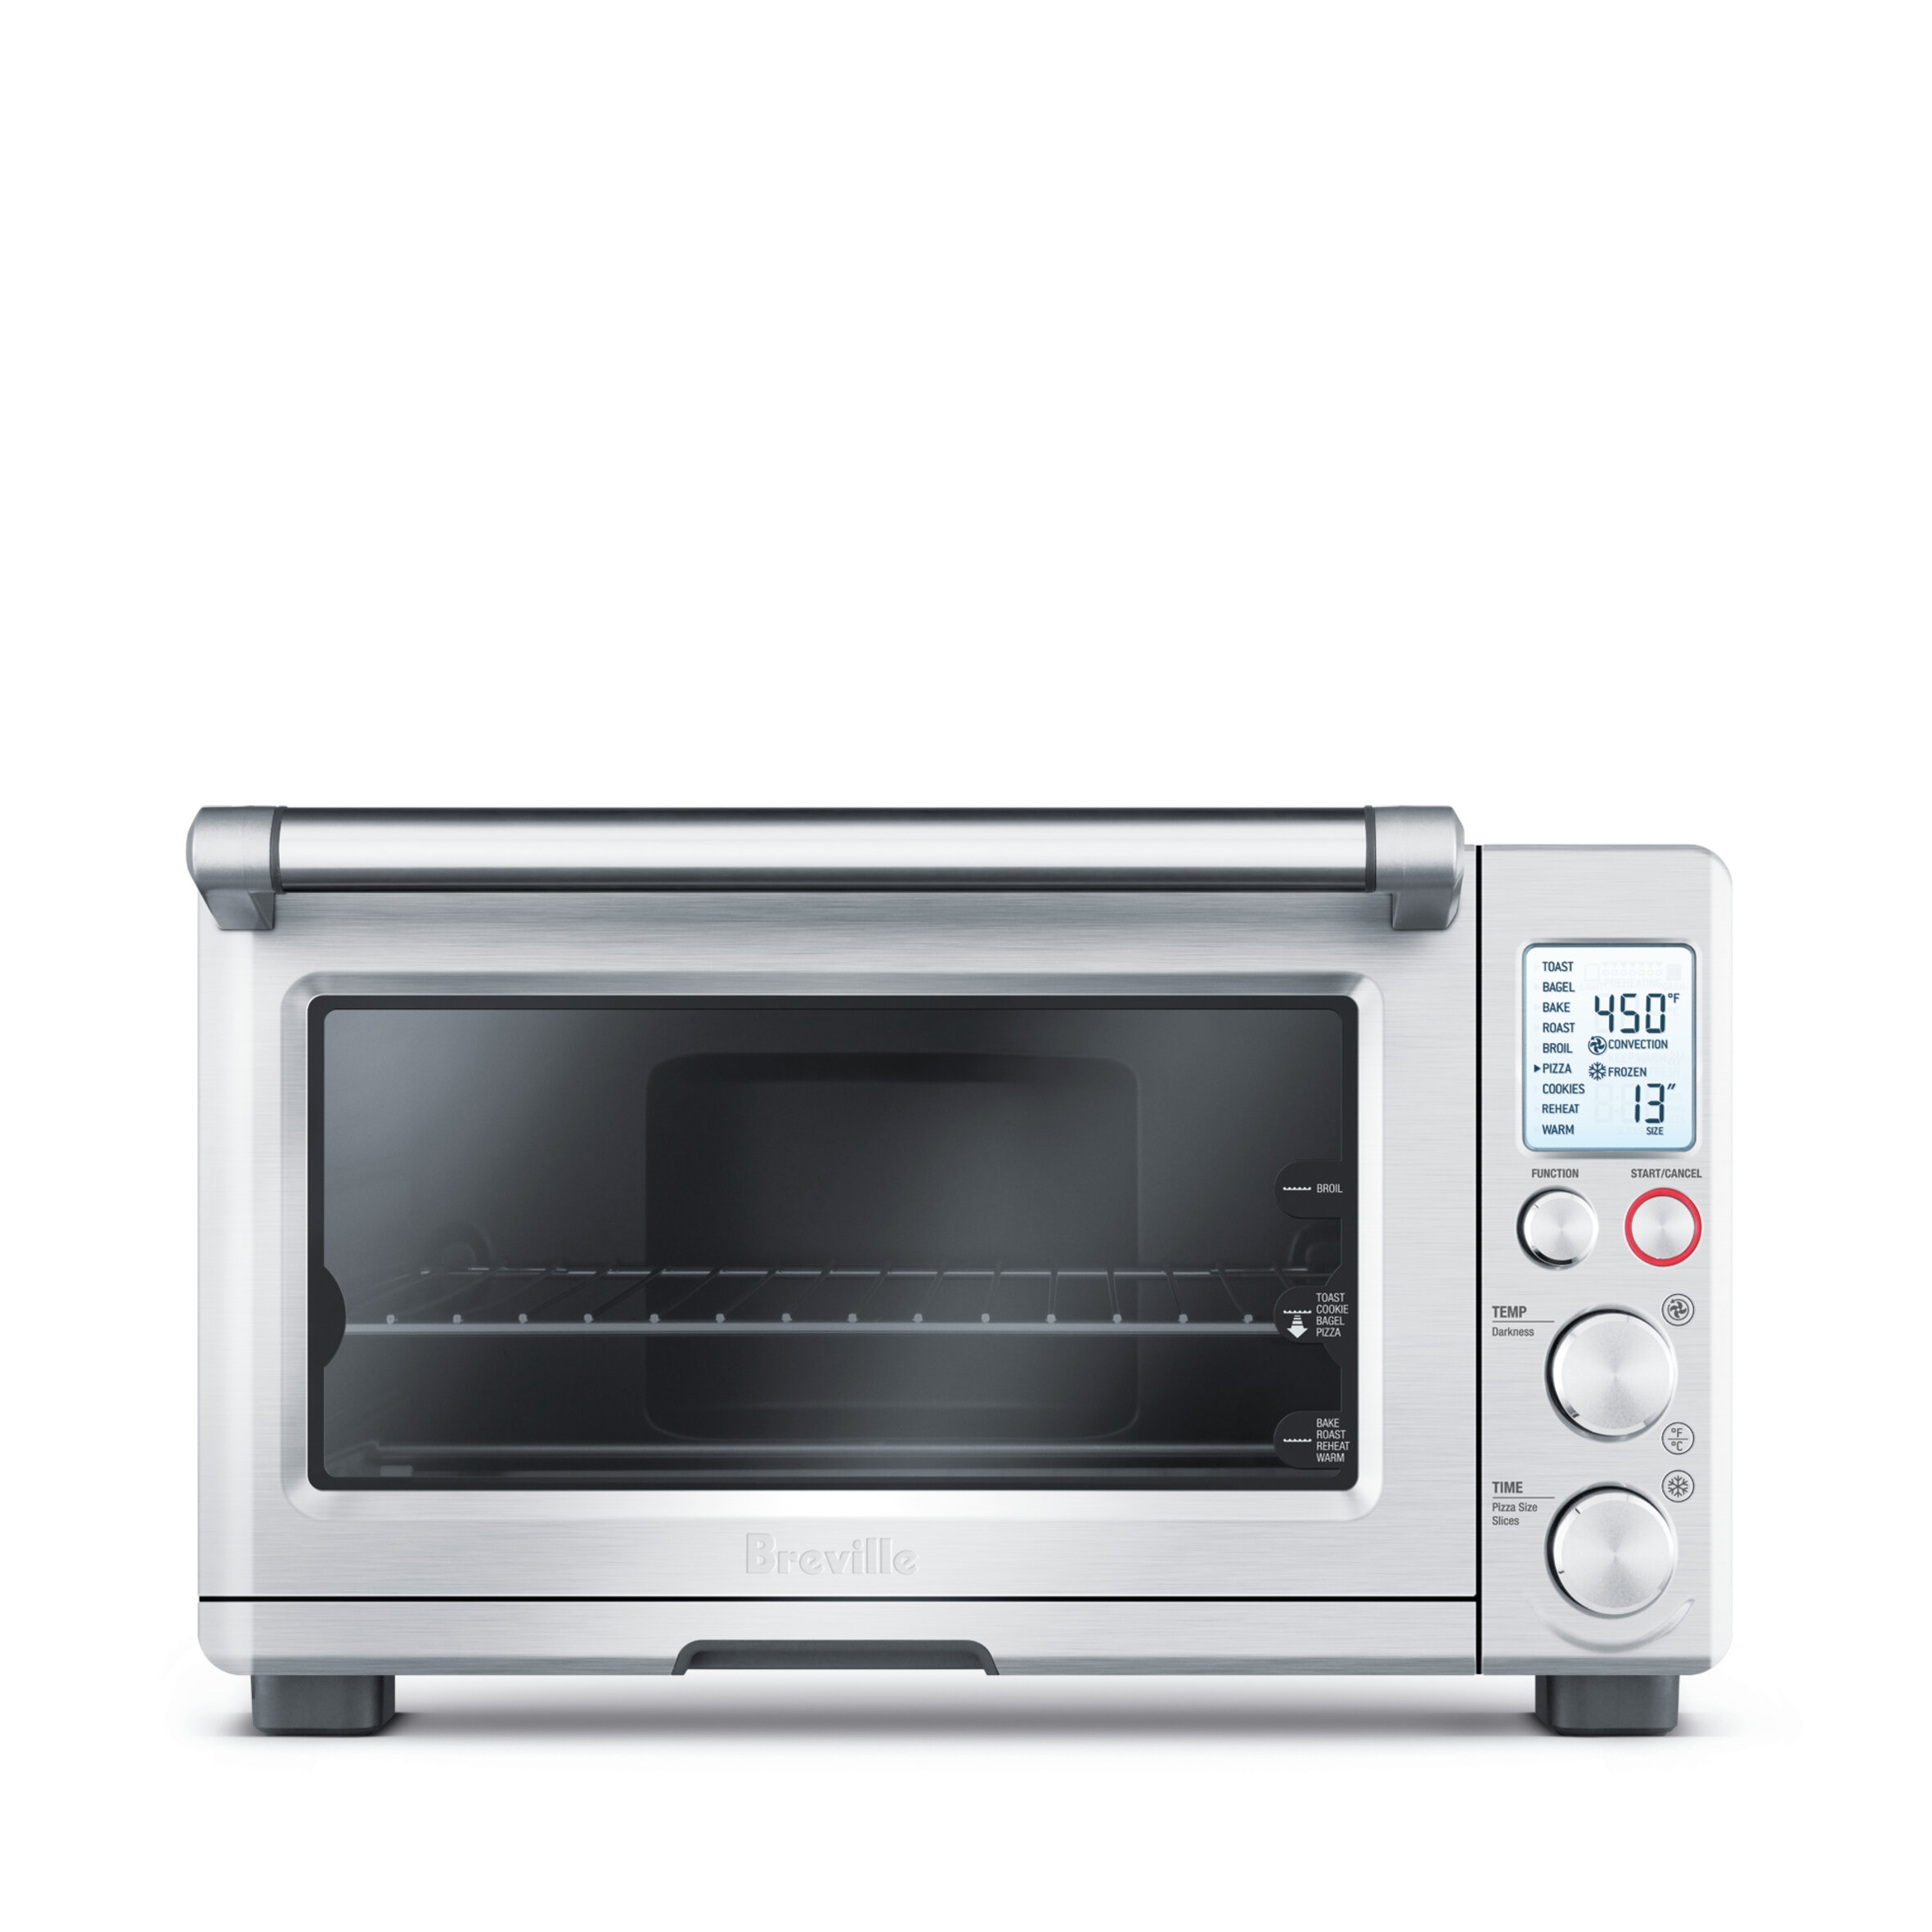 Breville Microwave Convection Oven Bestmicrowave